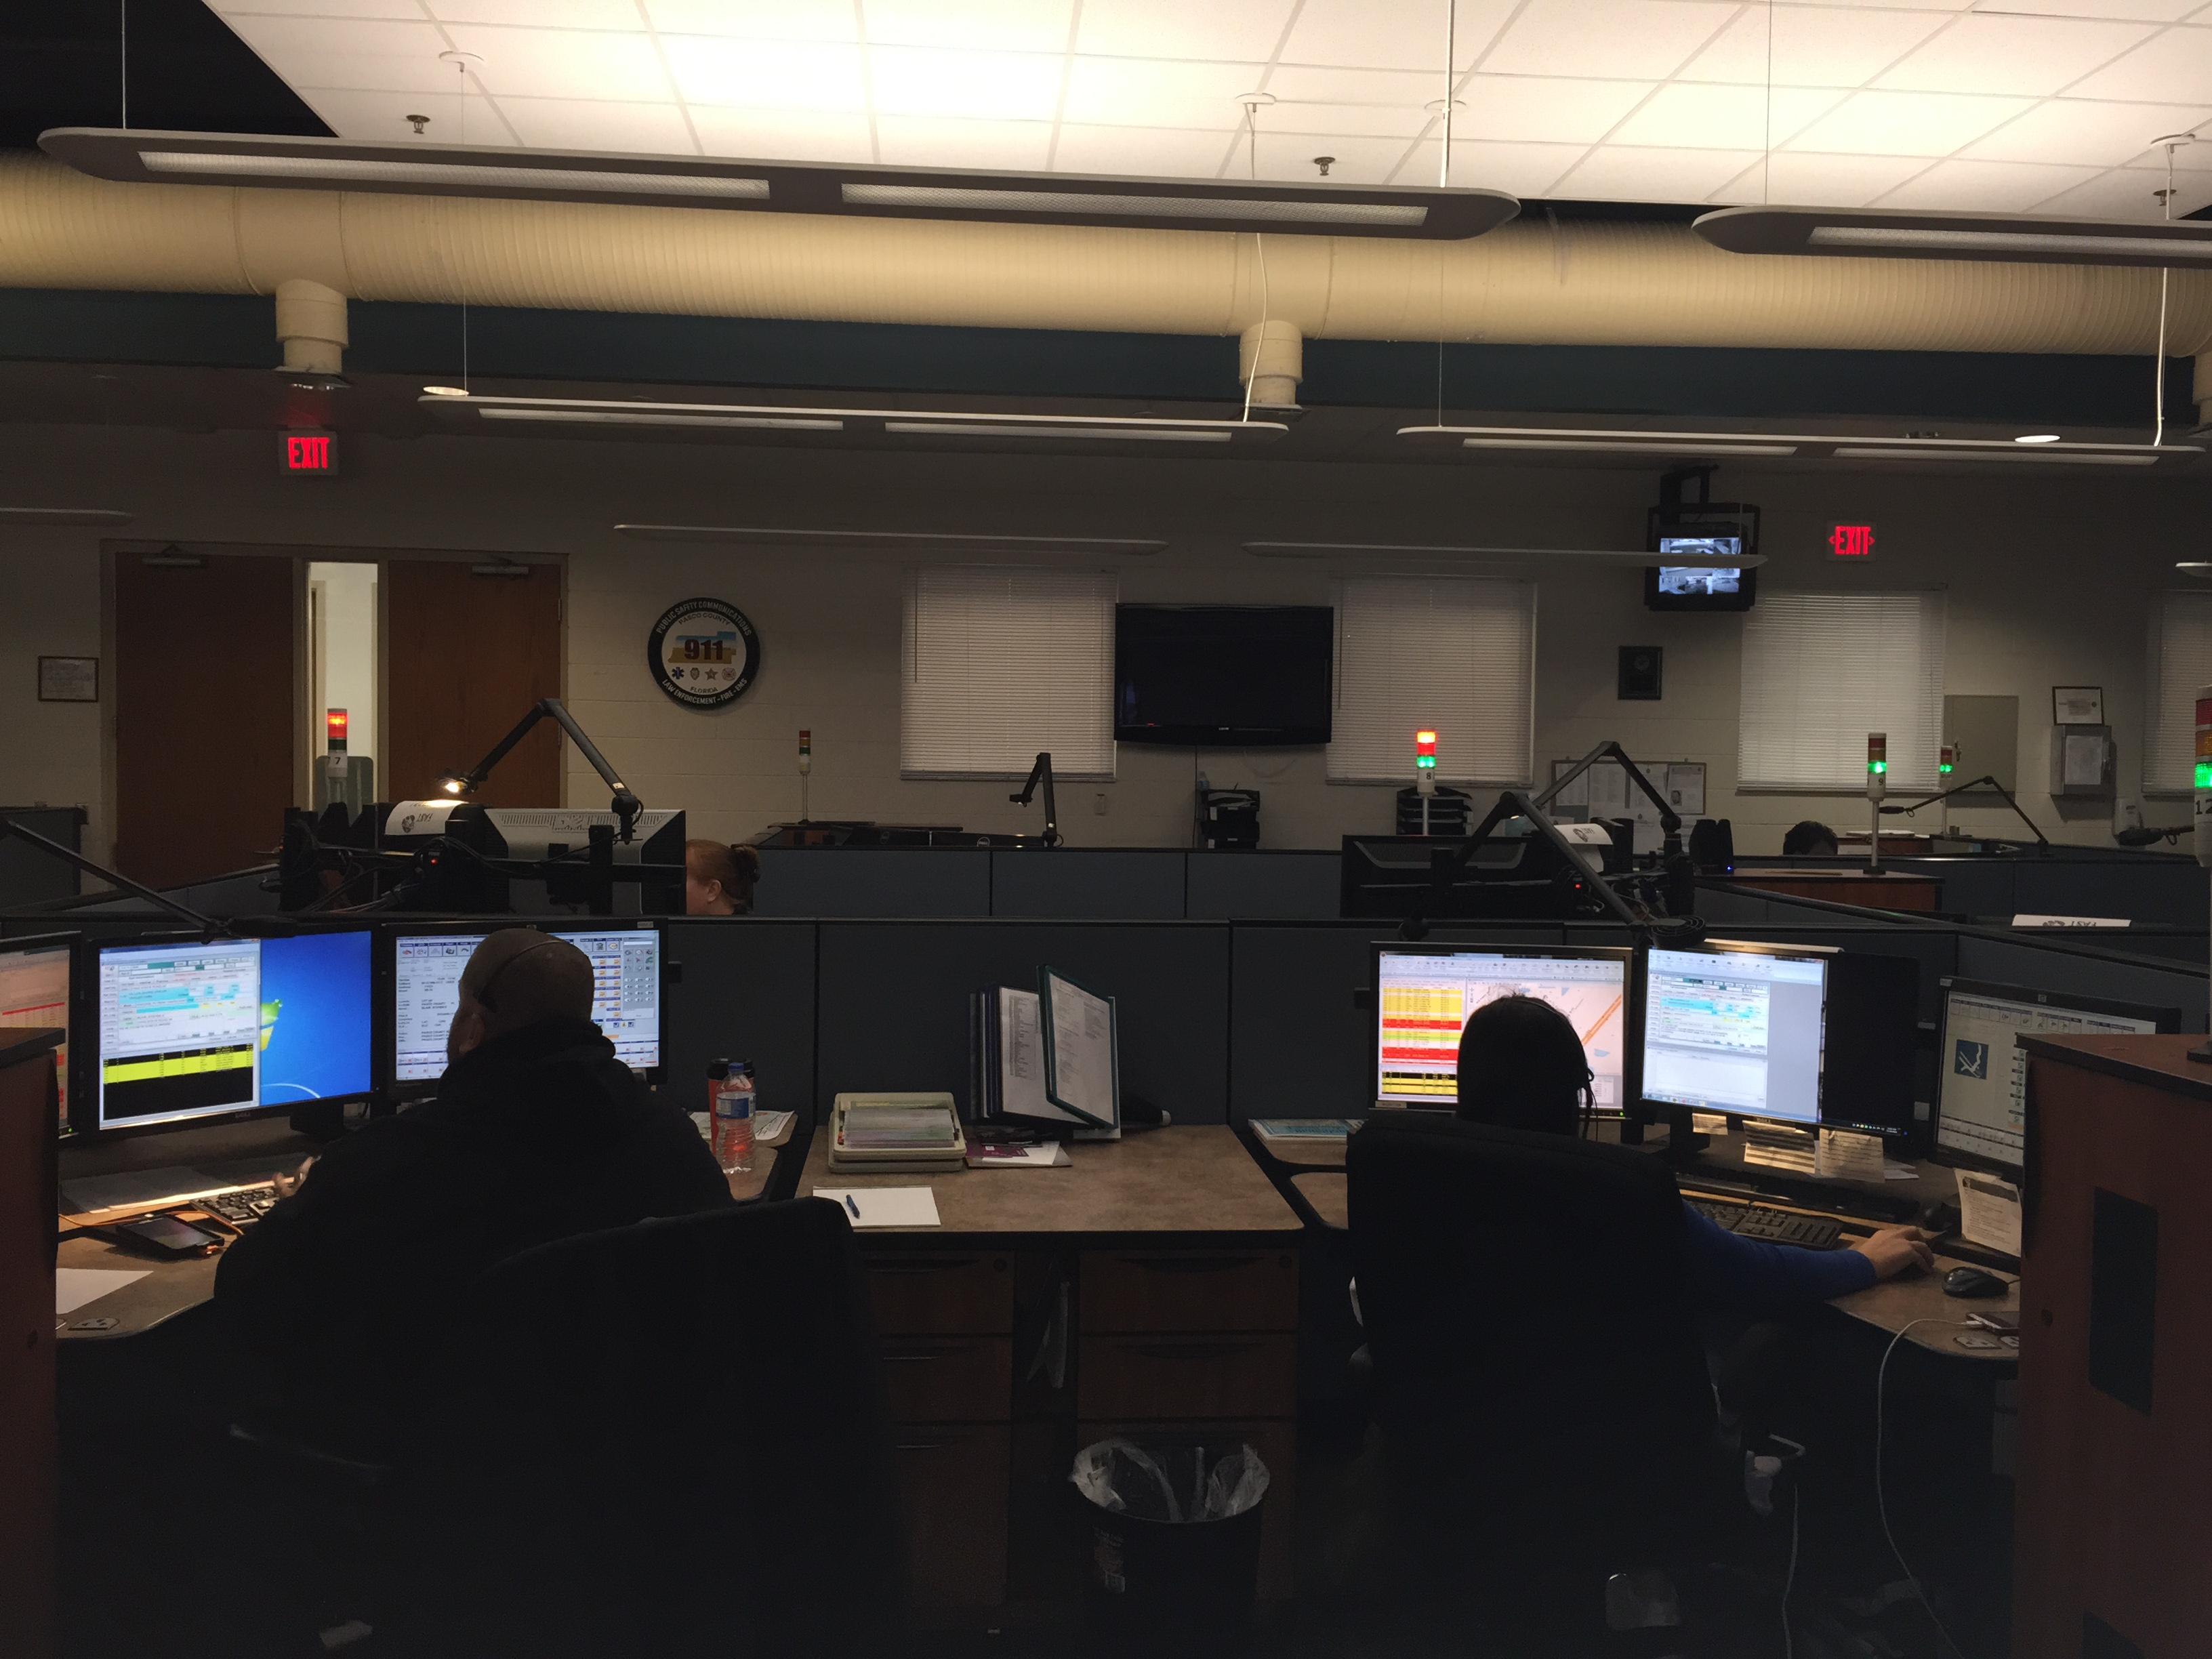 Department of Emergency Services (911) | Pasco County, FL